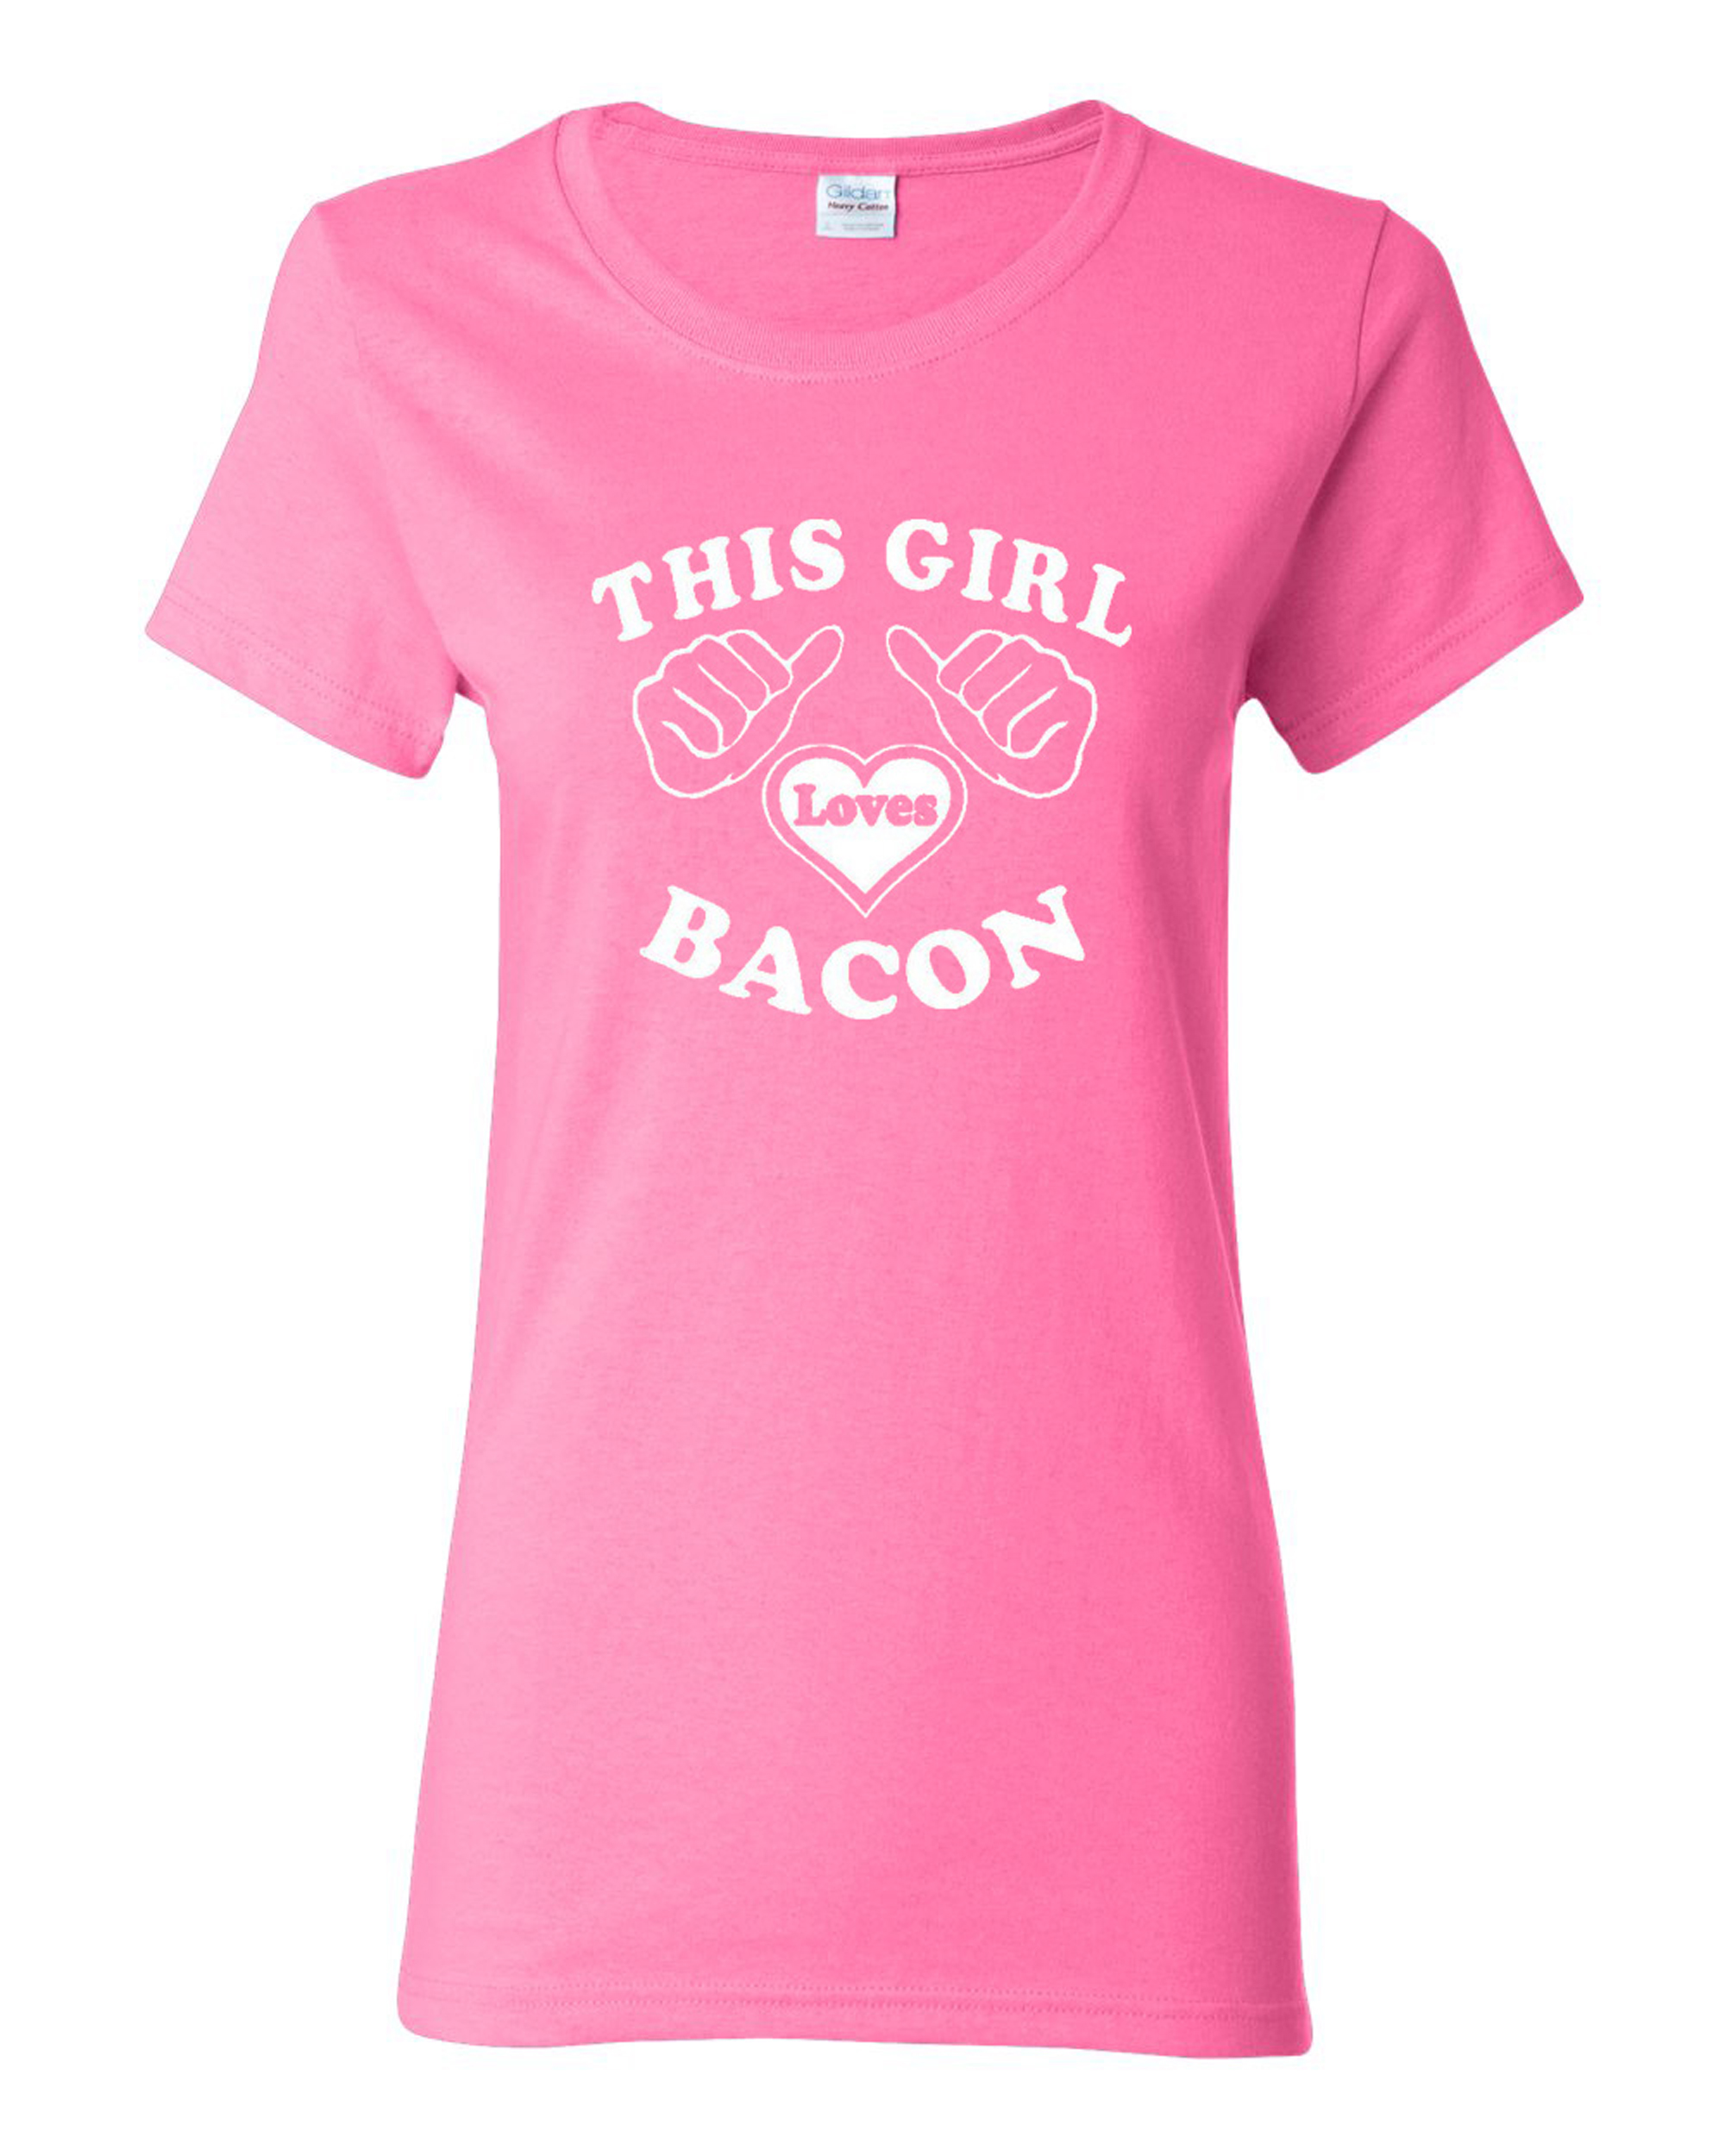 Ladies This Girl Loves Bacon T-Shirt Tee